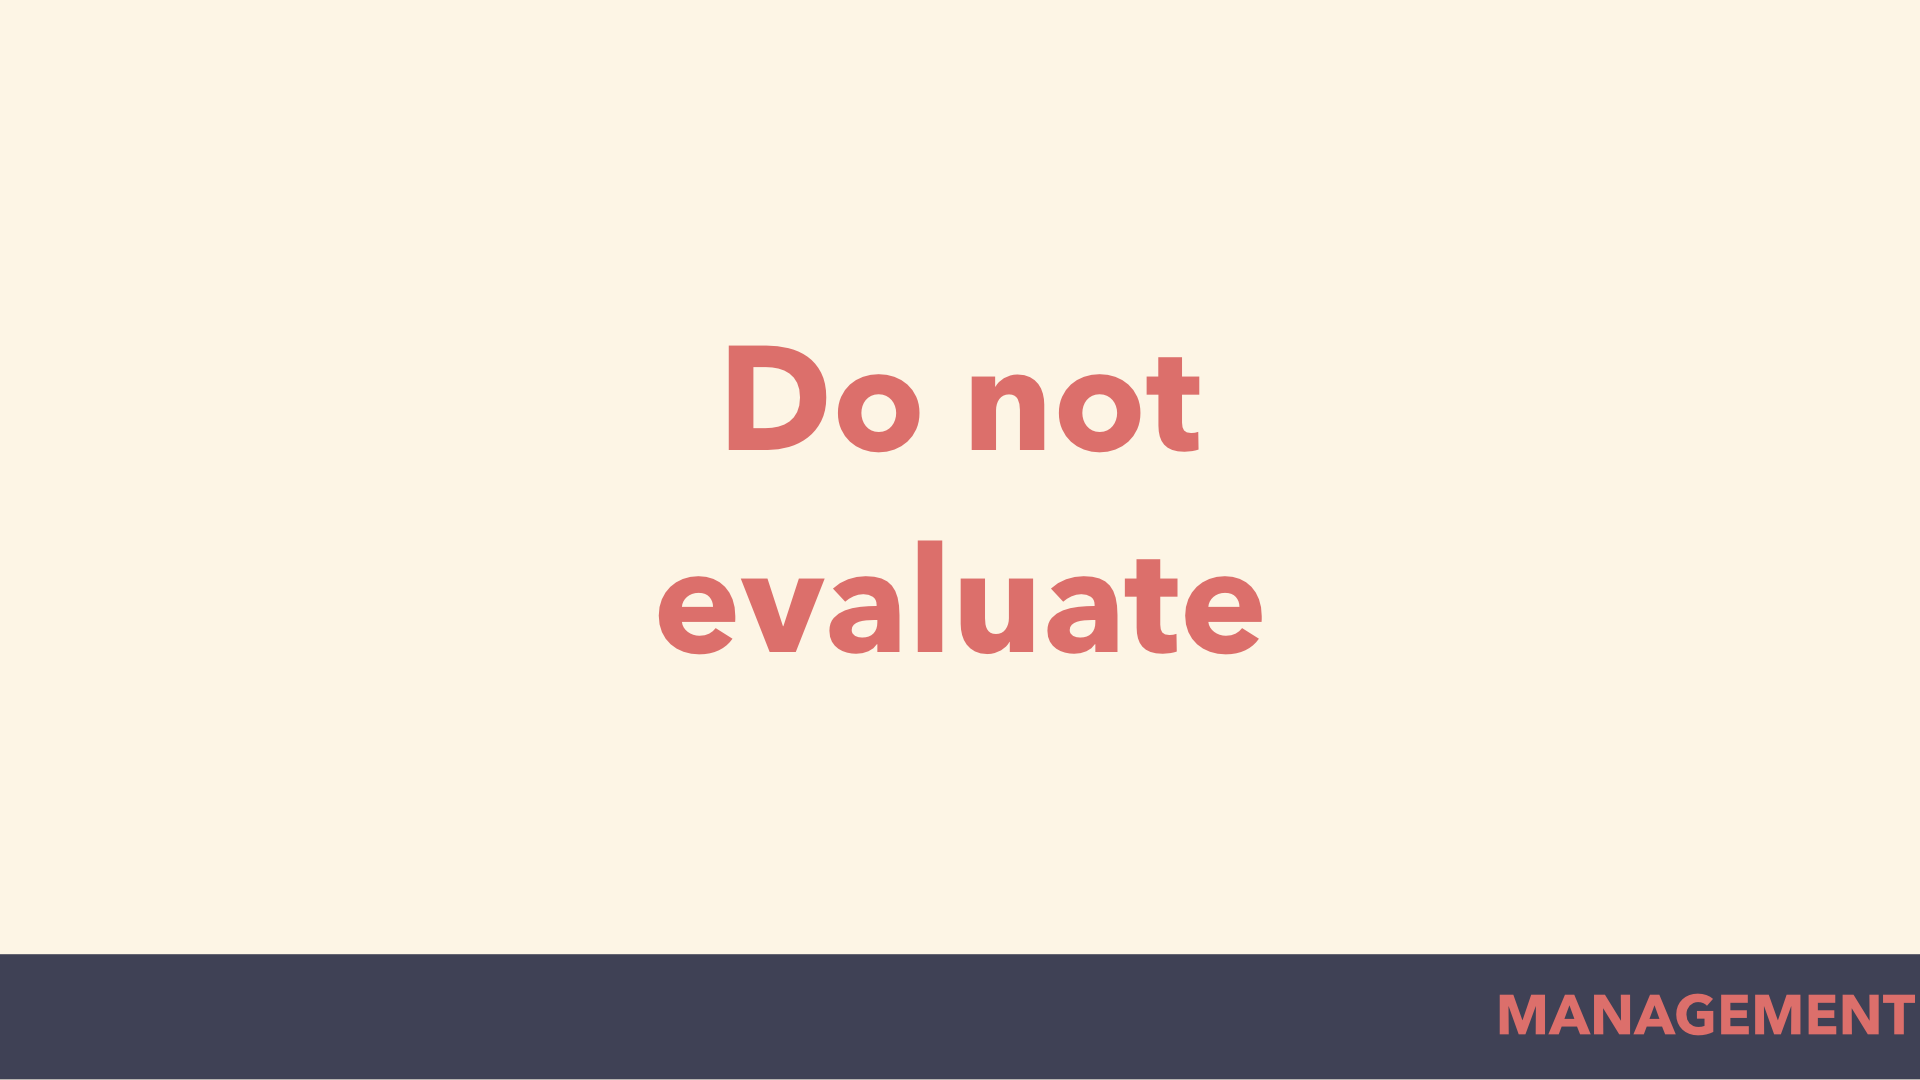 do not evaiuate